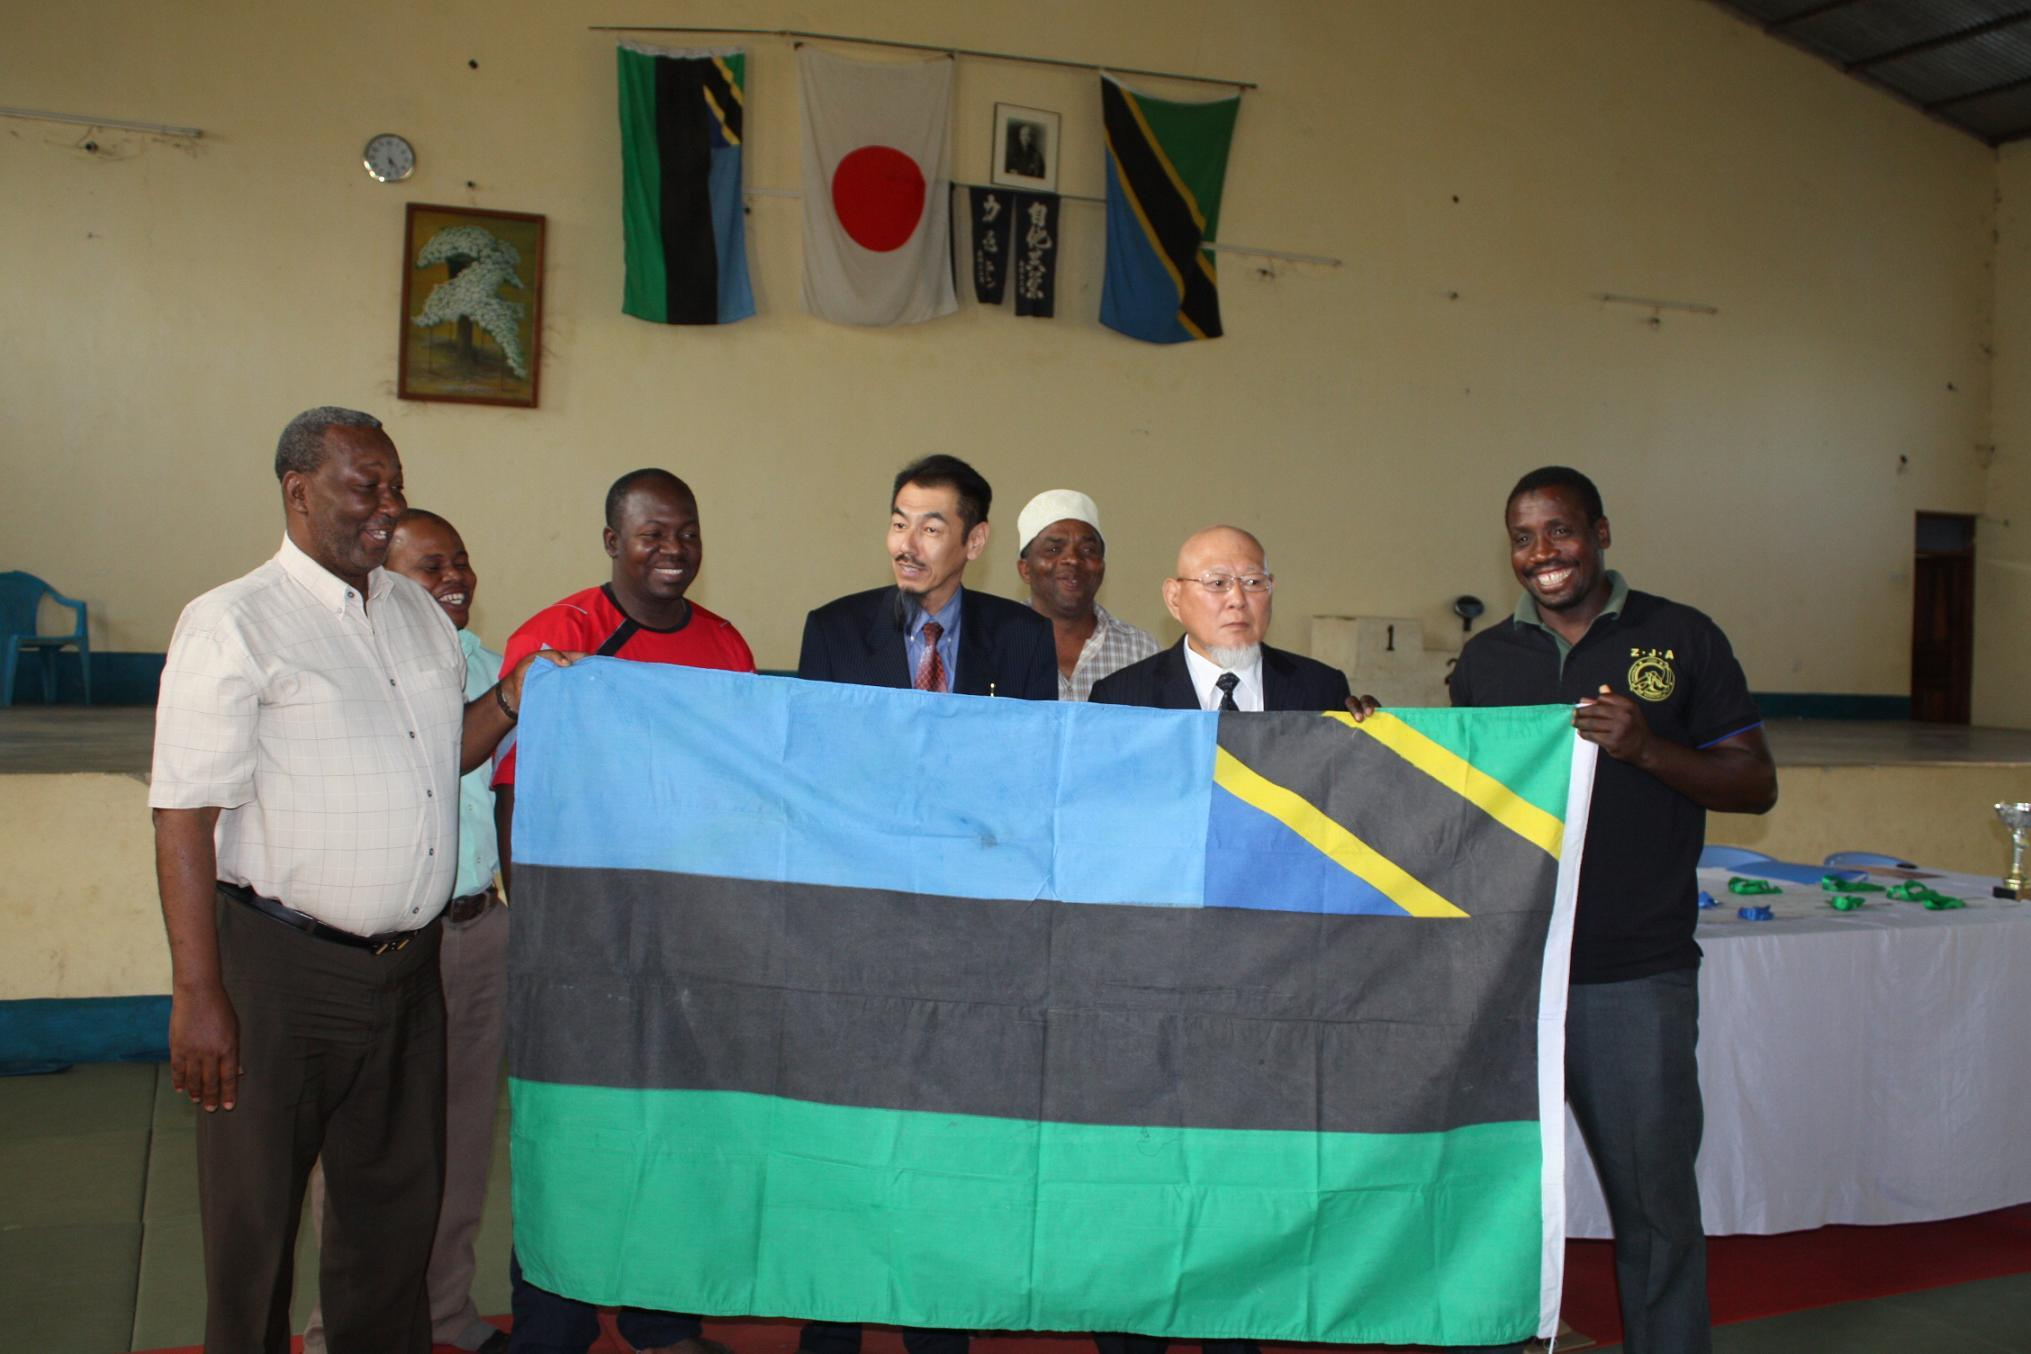 Ceremony of National Flag for The 5th East Africa Judo Championship 2011~国旗授与式_a0088841_1029329.jpg